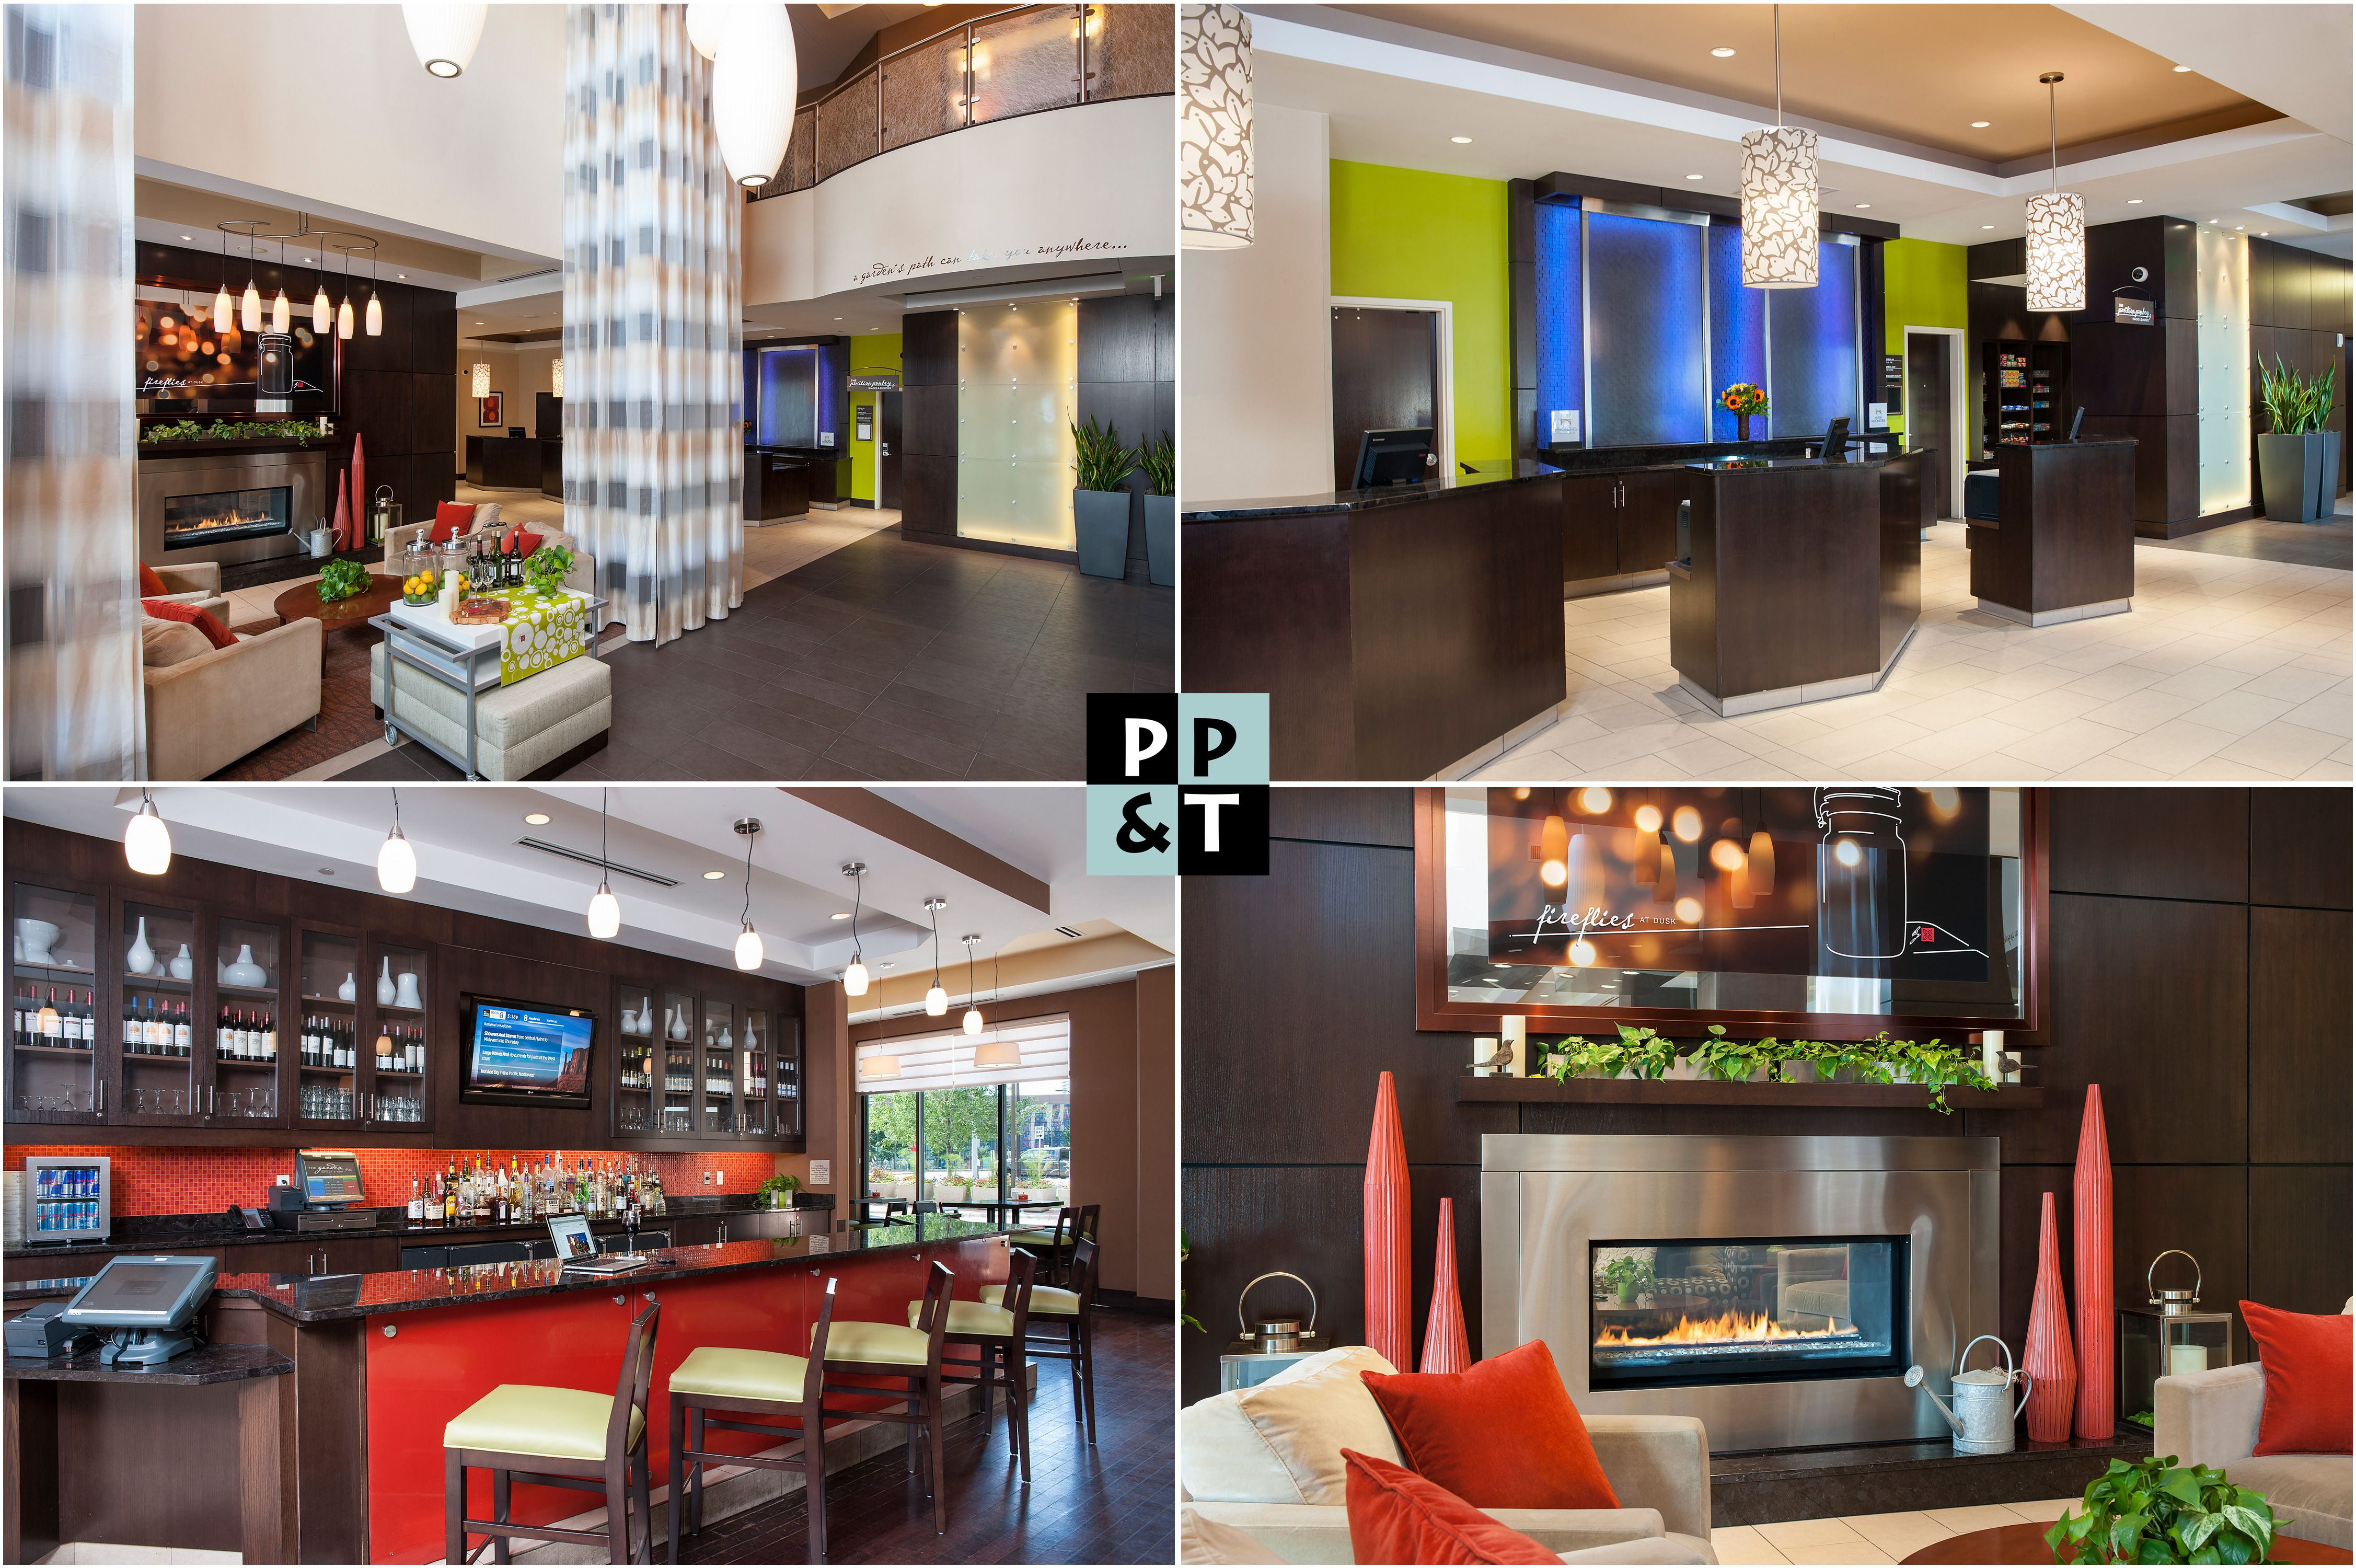 Hilton Garden Inn Downtown Minneapolis MN #Hotel Photographed By People  Places U0026 Things Photographics #